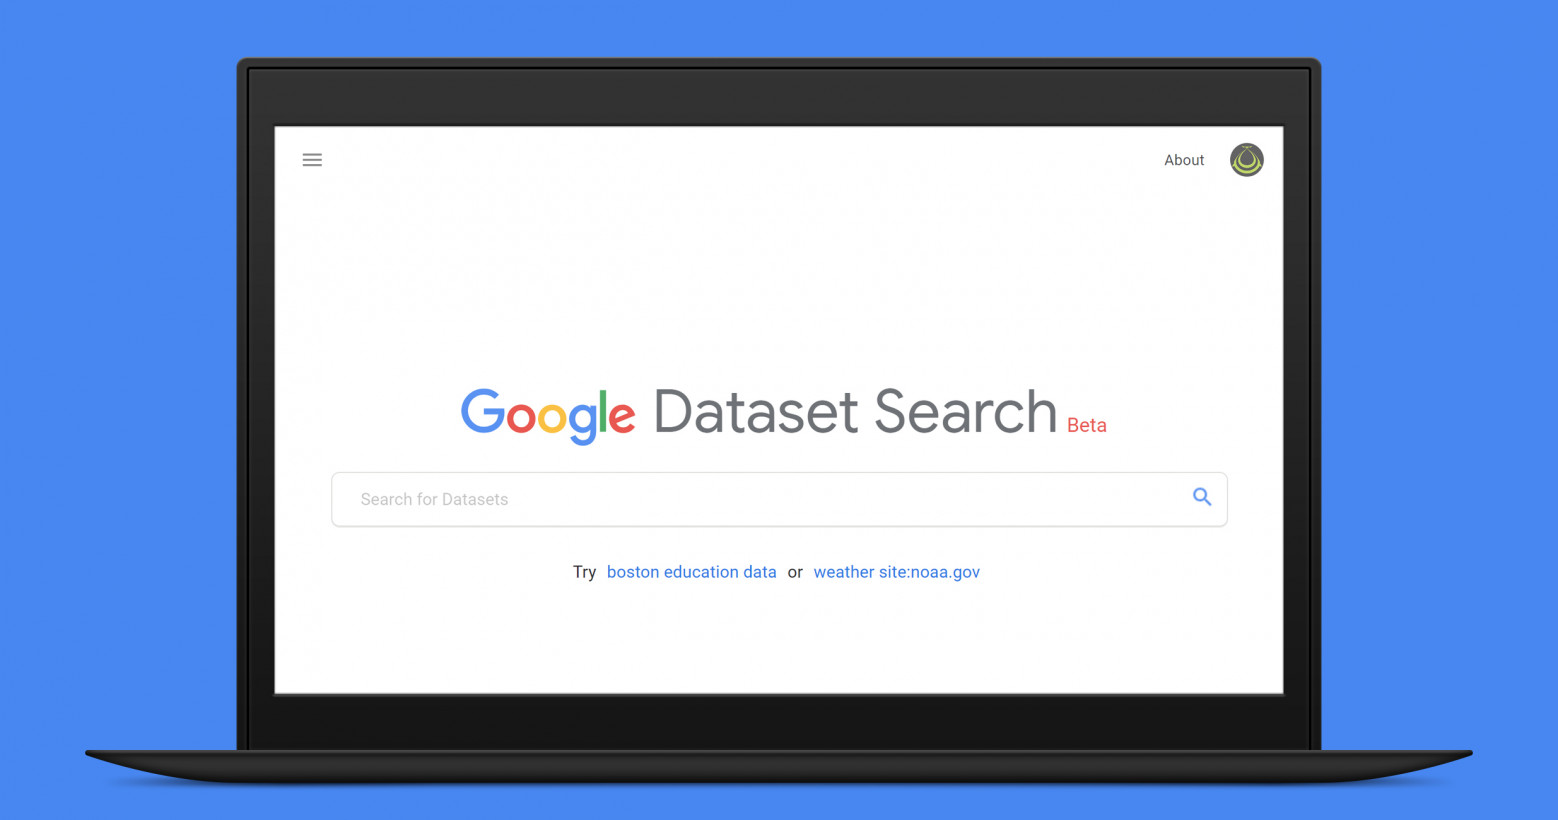 Google's new search engine reveals public datasets for research and journalism projects